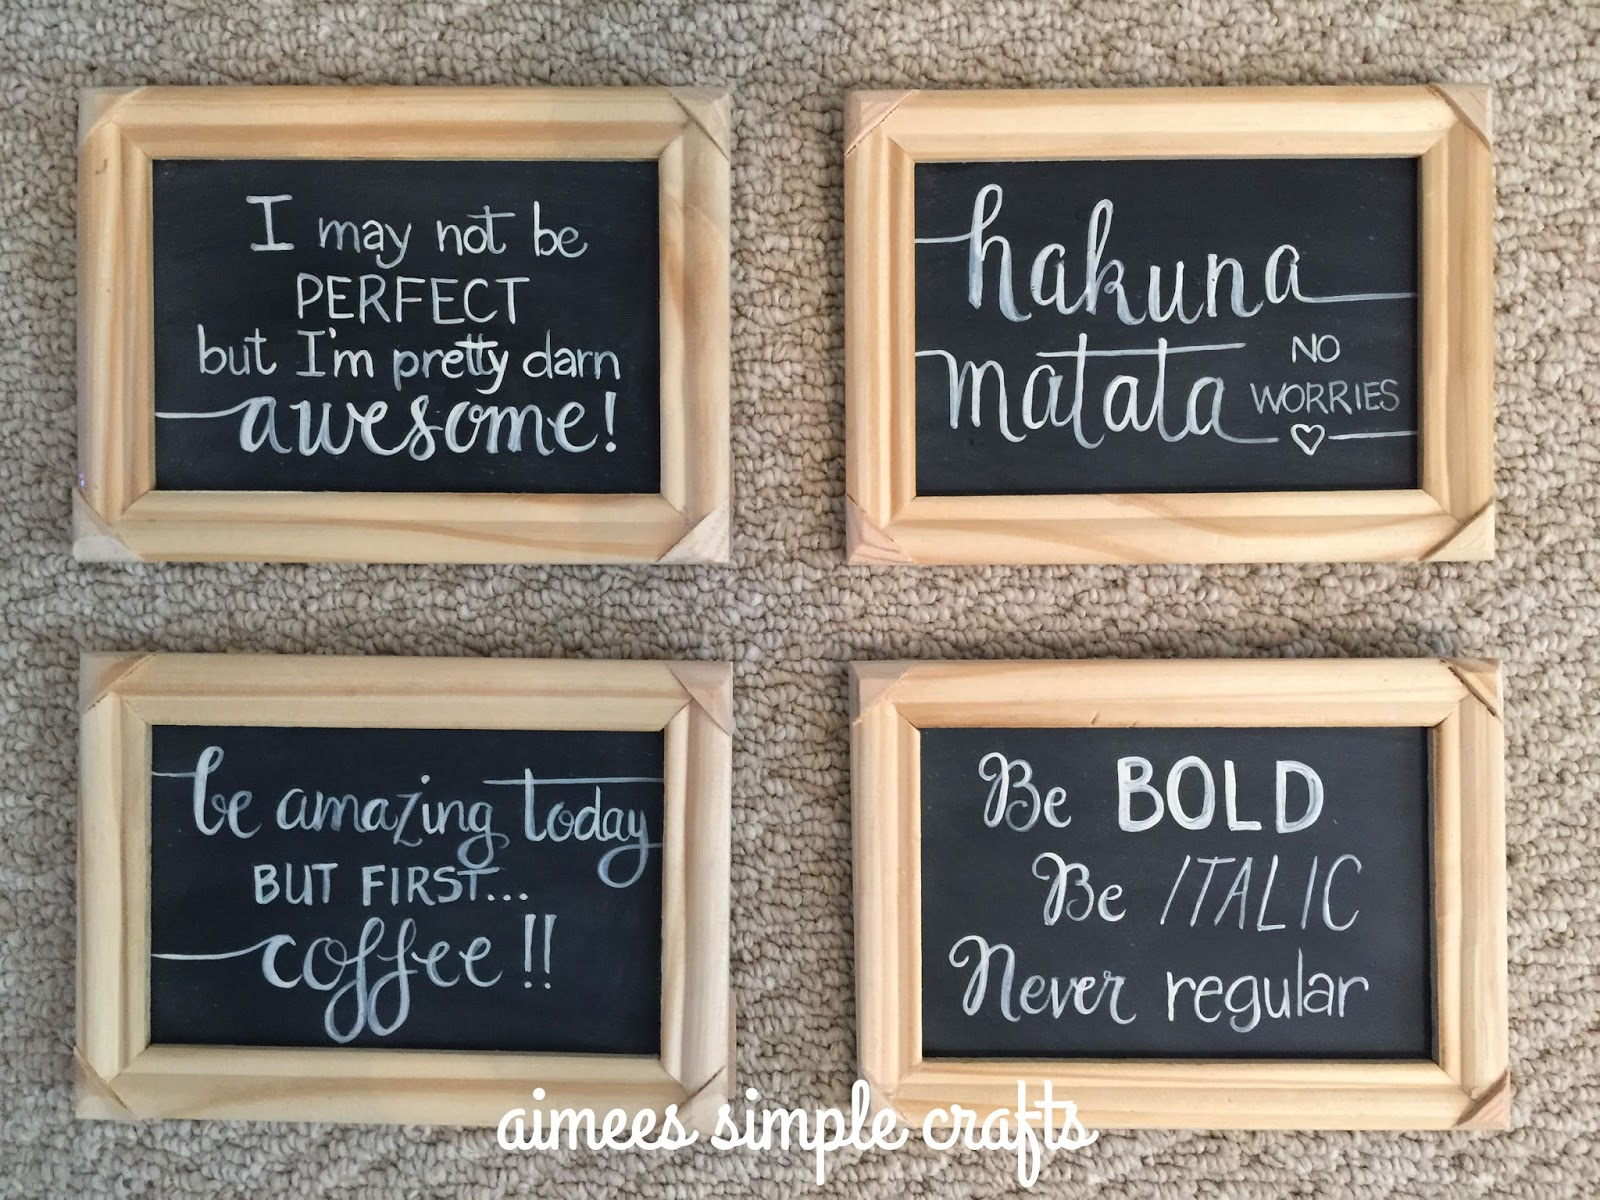 Frames With Quotes On Them: SMALL SAYINGS